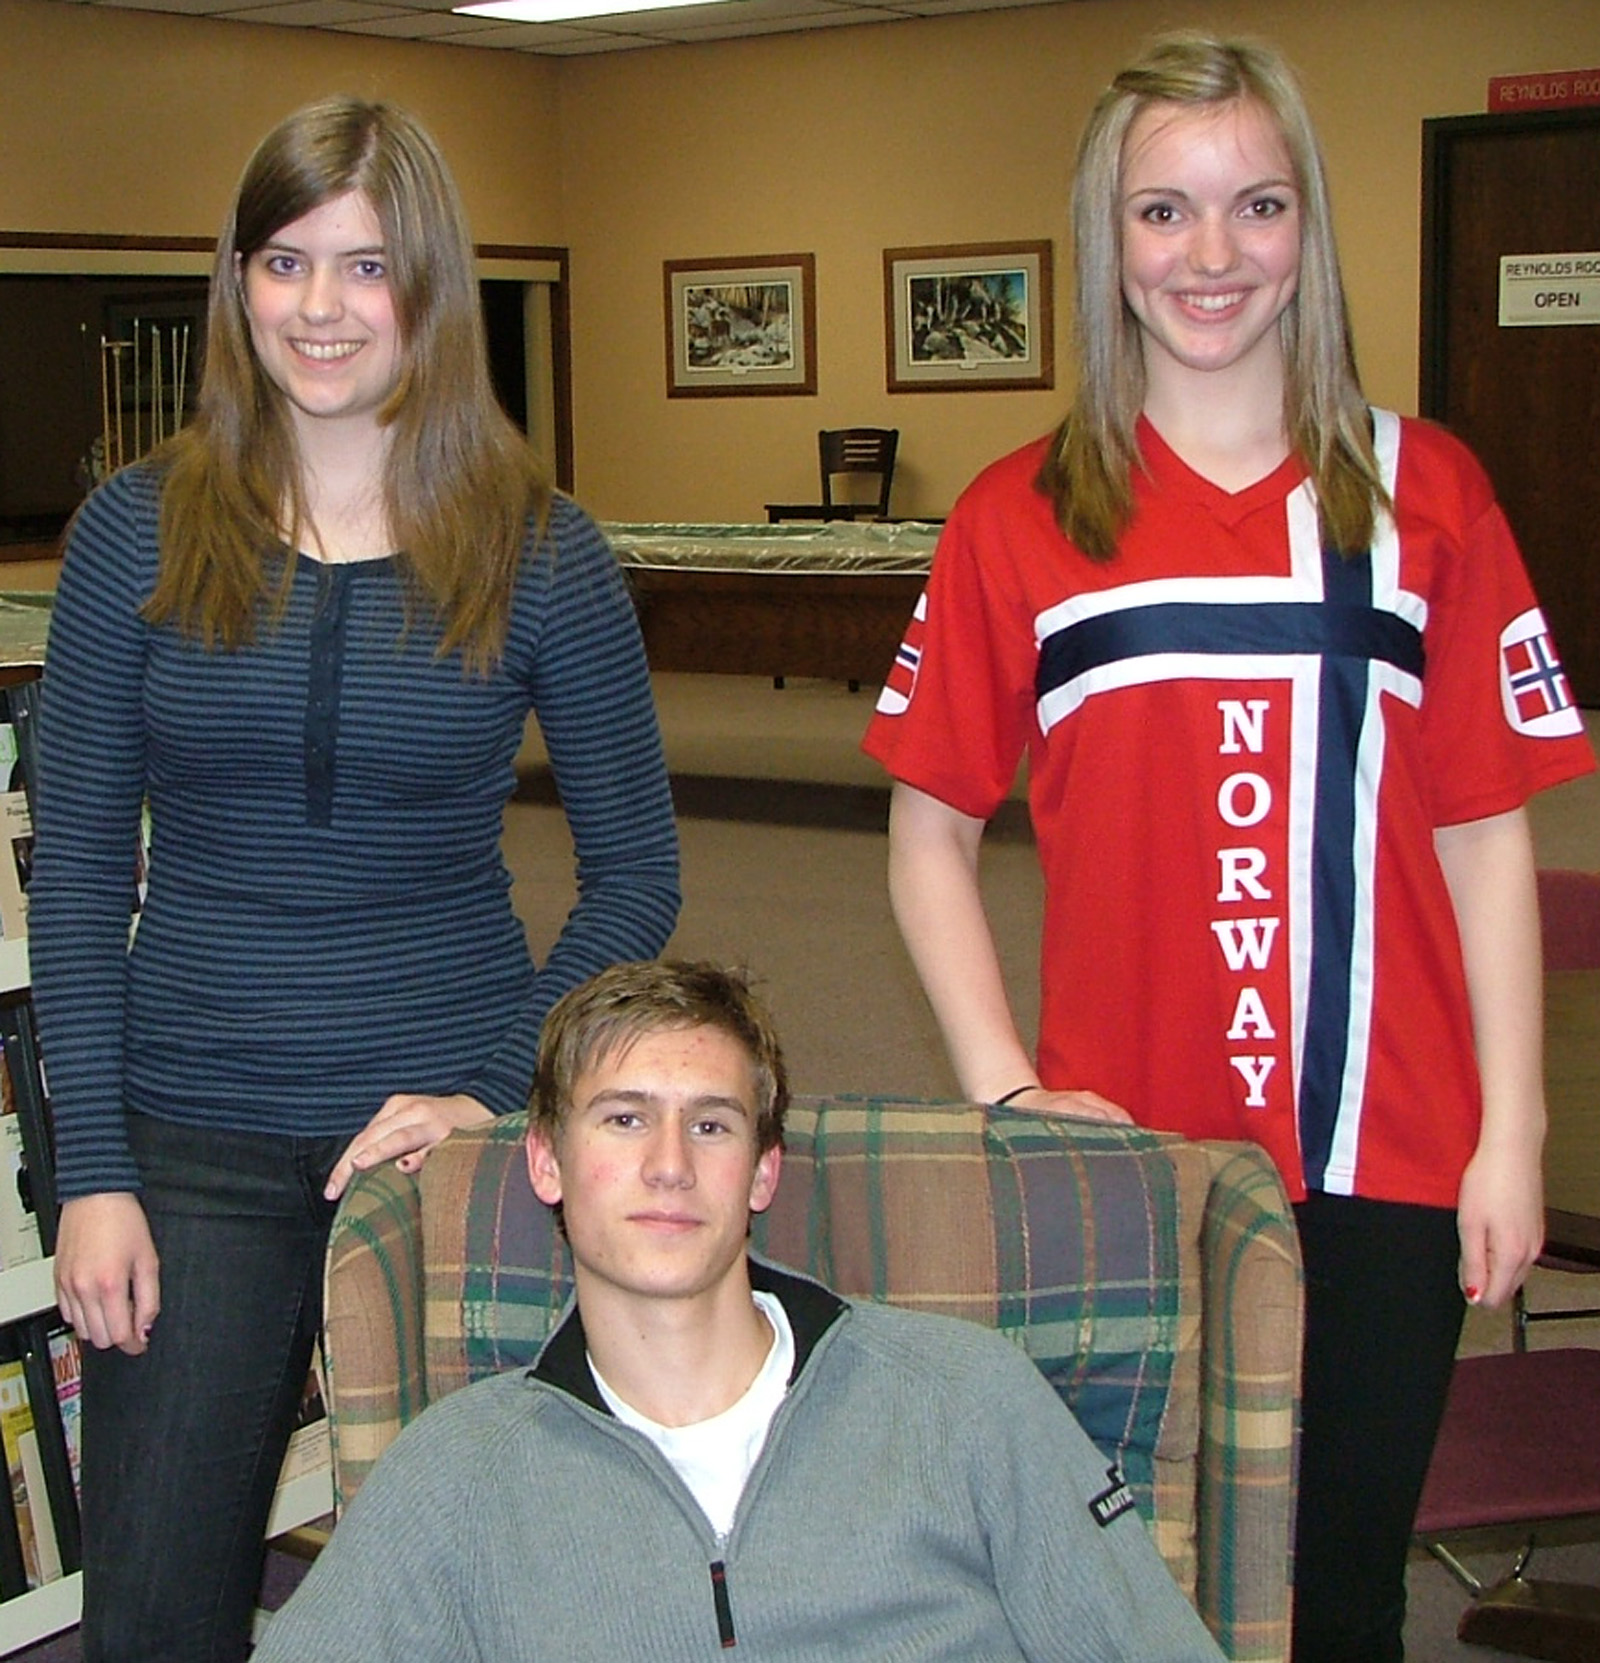 Three Norwegian exchange students gave a presentation to Sons of Norway Fedraheimen Lodge in Willmar, Minn., on April 11. From left: Marit Aarvik from Hakadal, studying at Willmar High School in Willmar, Minn.; Ivar Duserod from Eidsberg, studying at Maccray High School in Clara City, Minn.;  and Jorun Guldbakke Øiesvold from Bodø, who is studying at Maccray High School in Clara City, Minn.. Photo: Gary Erickson